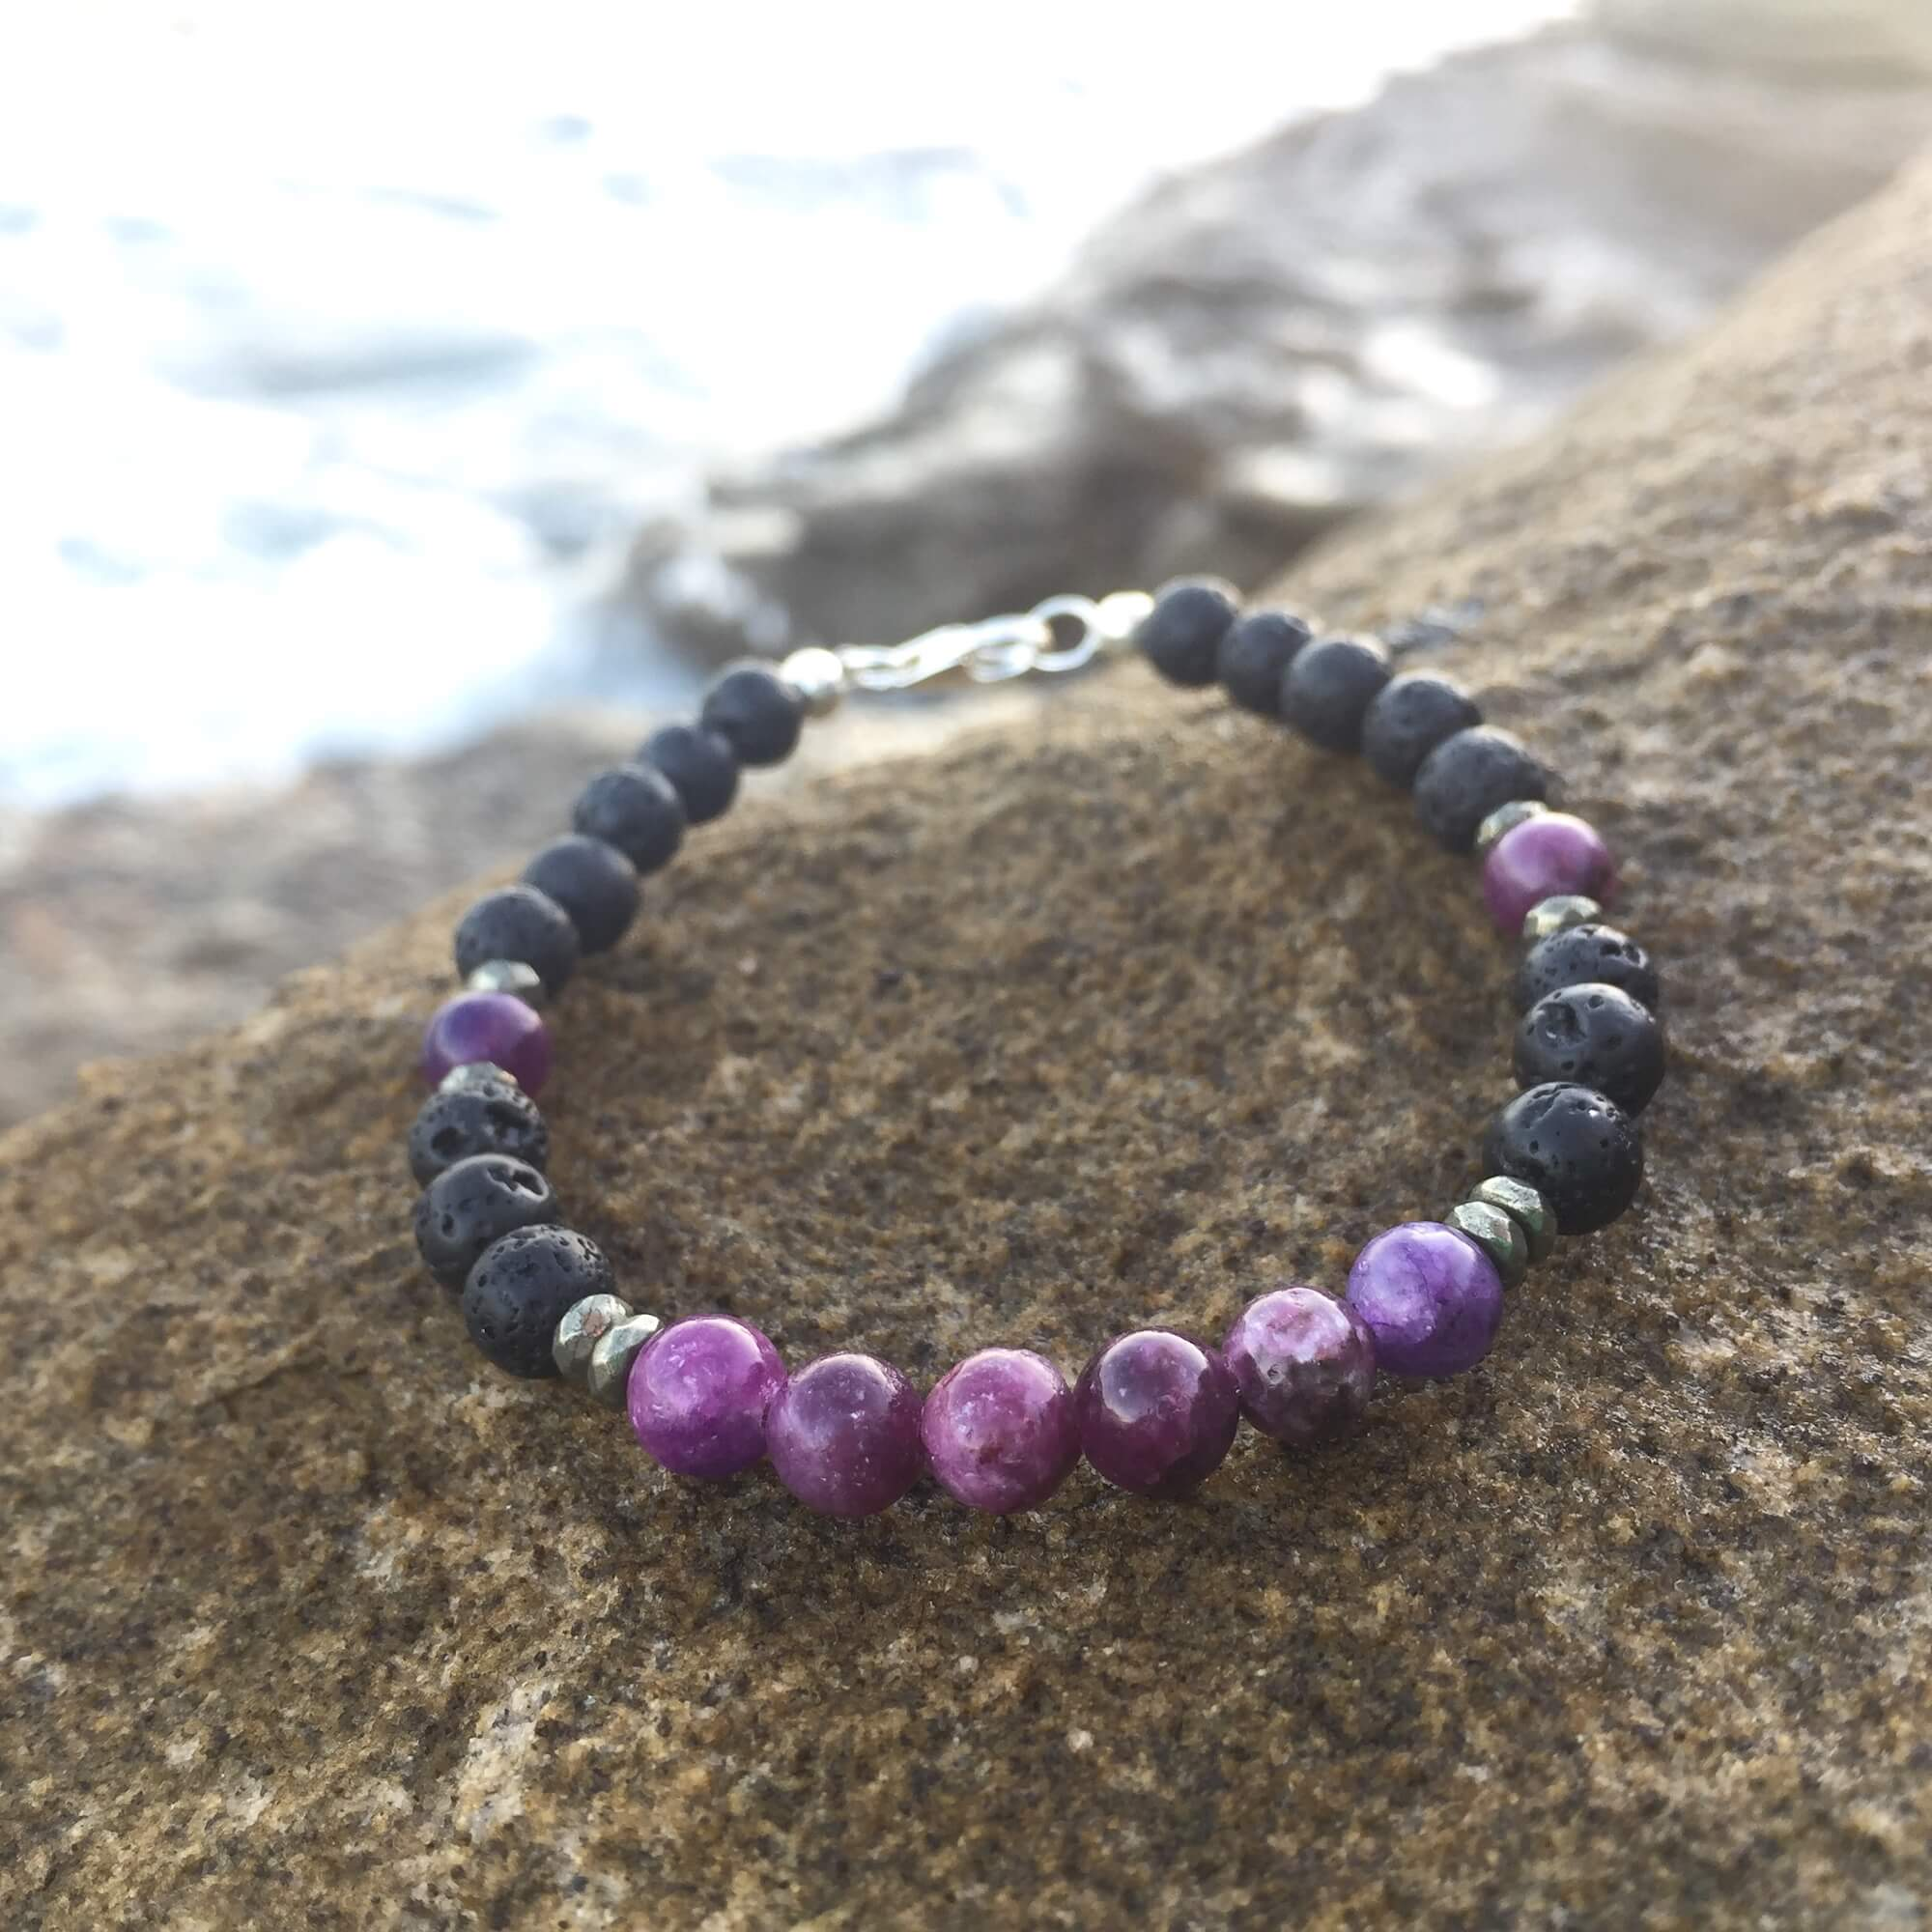 Lepidolite, Pyrite & Lava Bead Diffuser Bracelet Hand Beaded by House of Aloha Central Coast NSW Australia